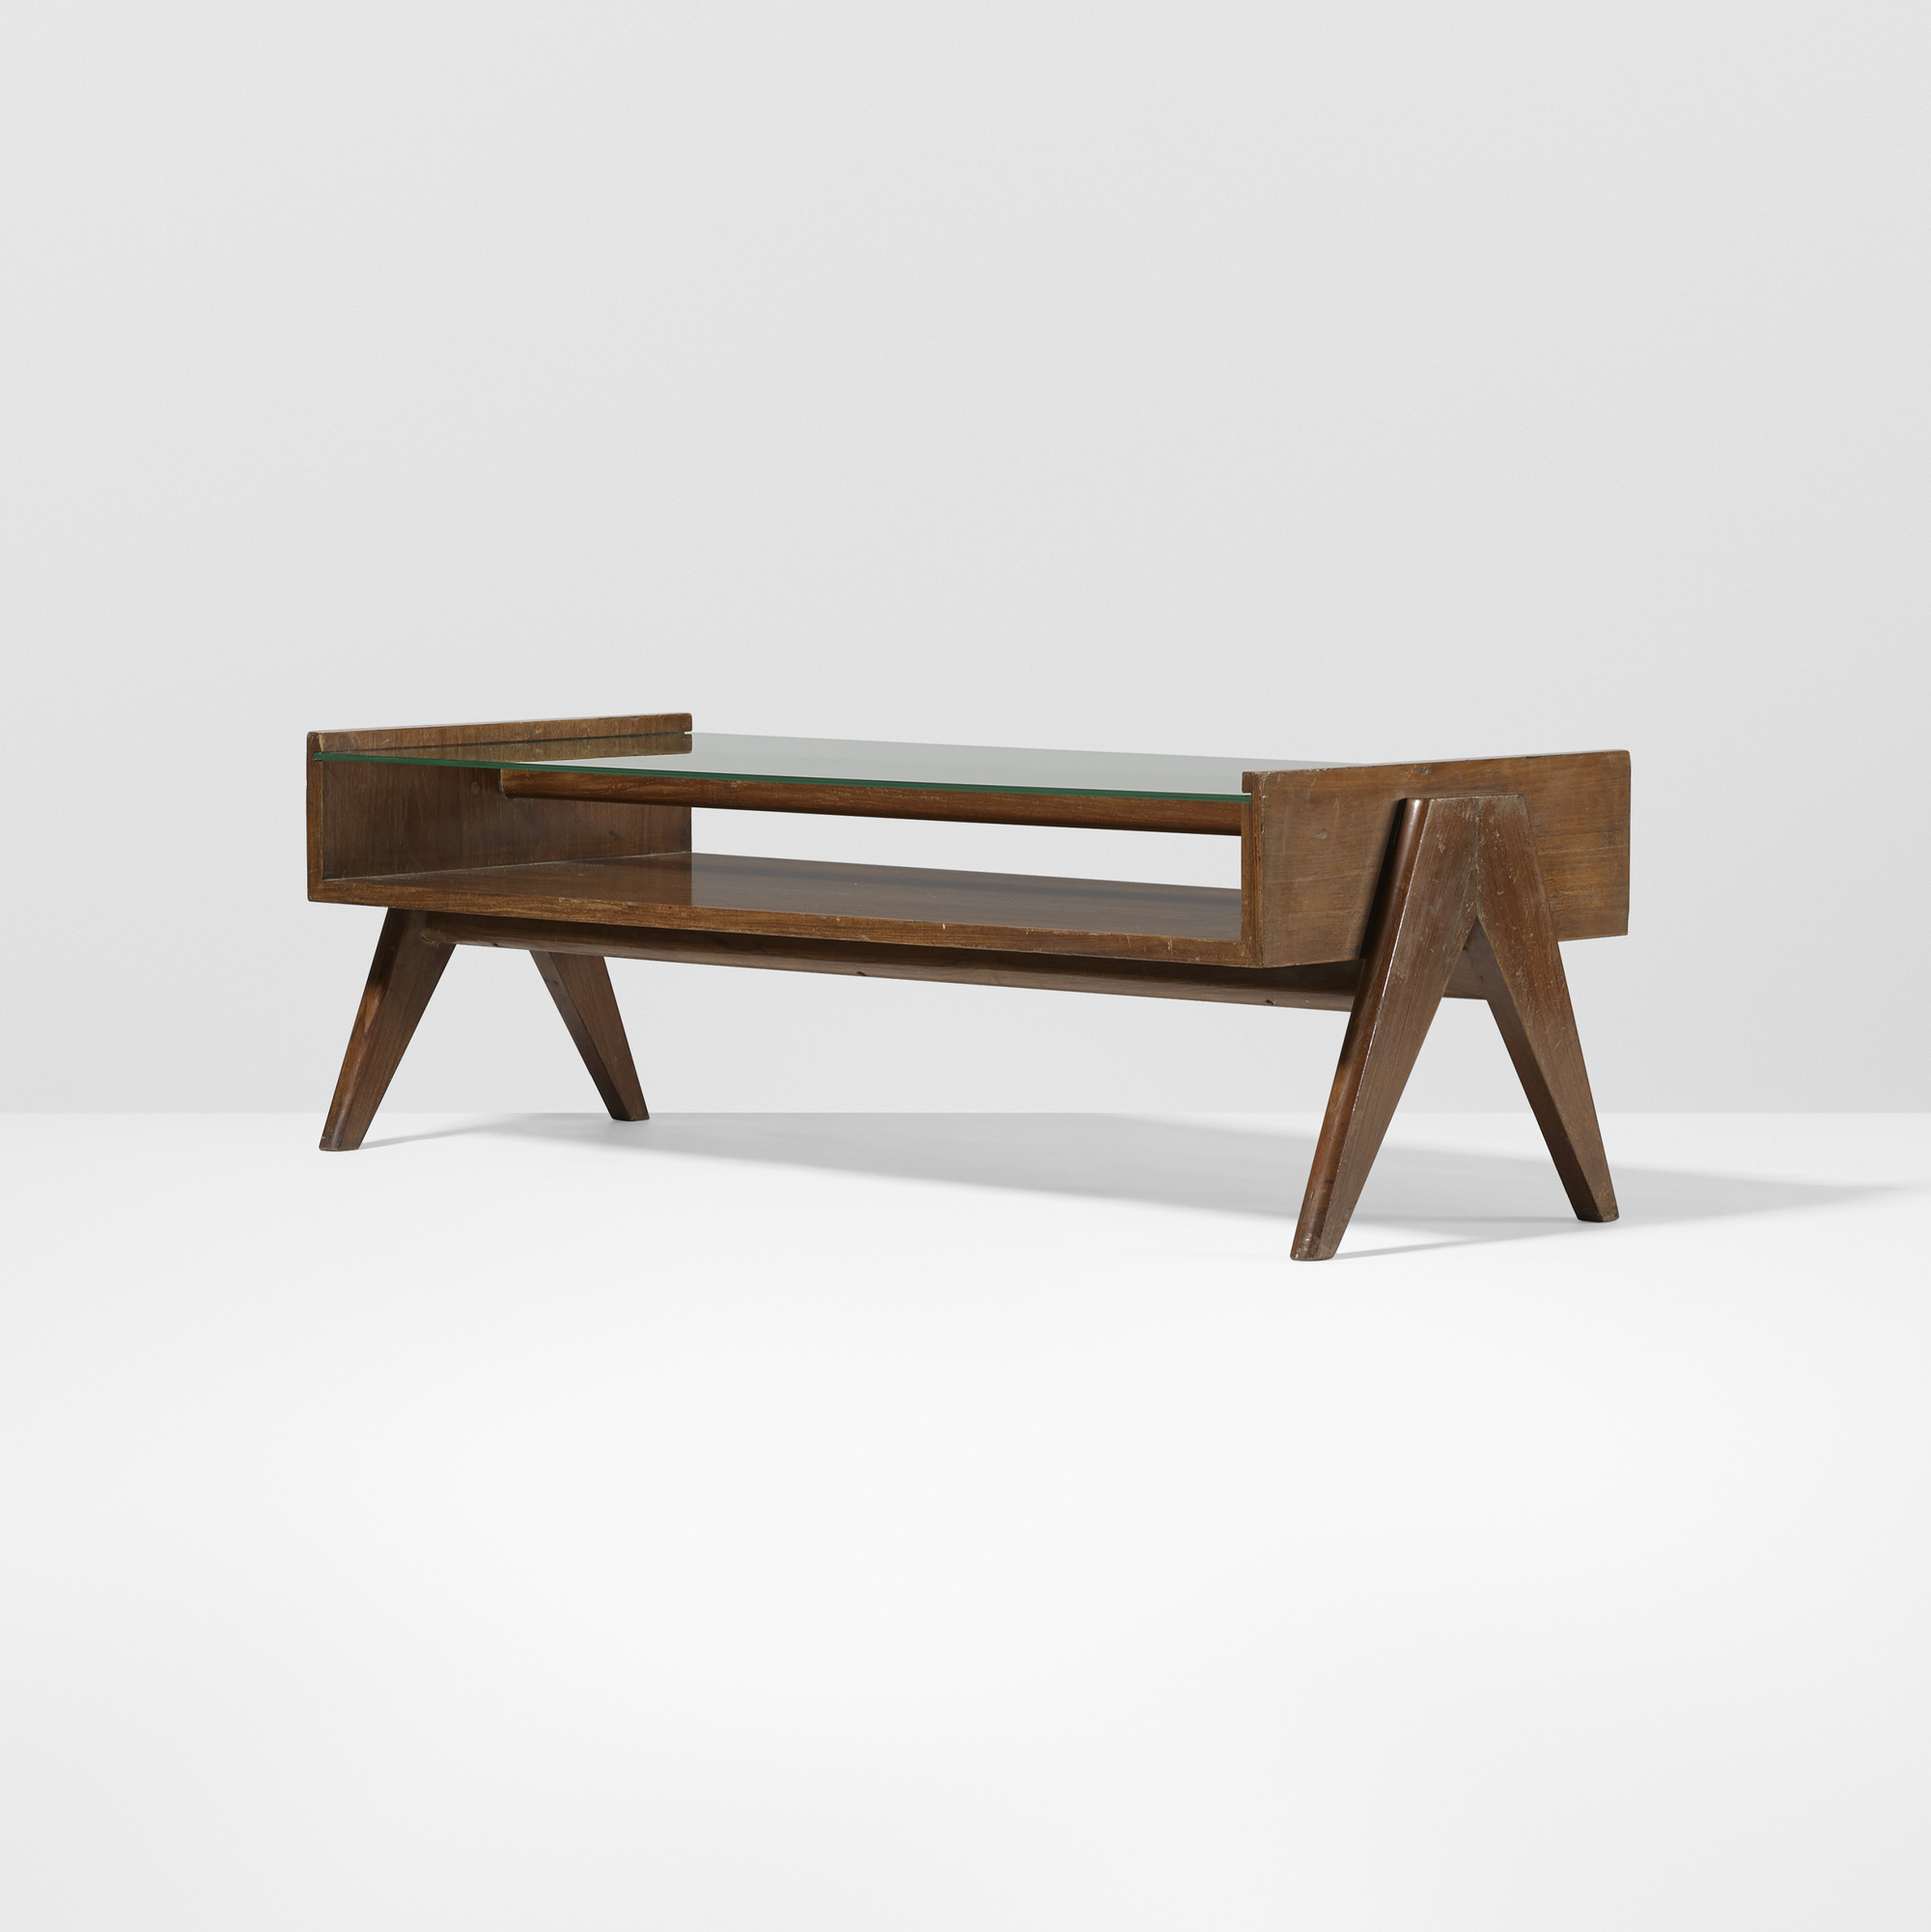 103: Pierre Jeanneret / Coffee Table From Chandigarh (1 Of 2)